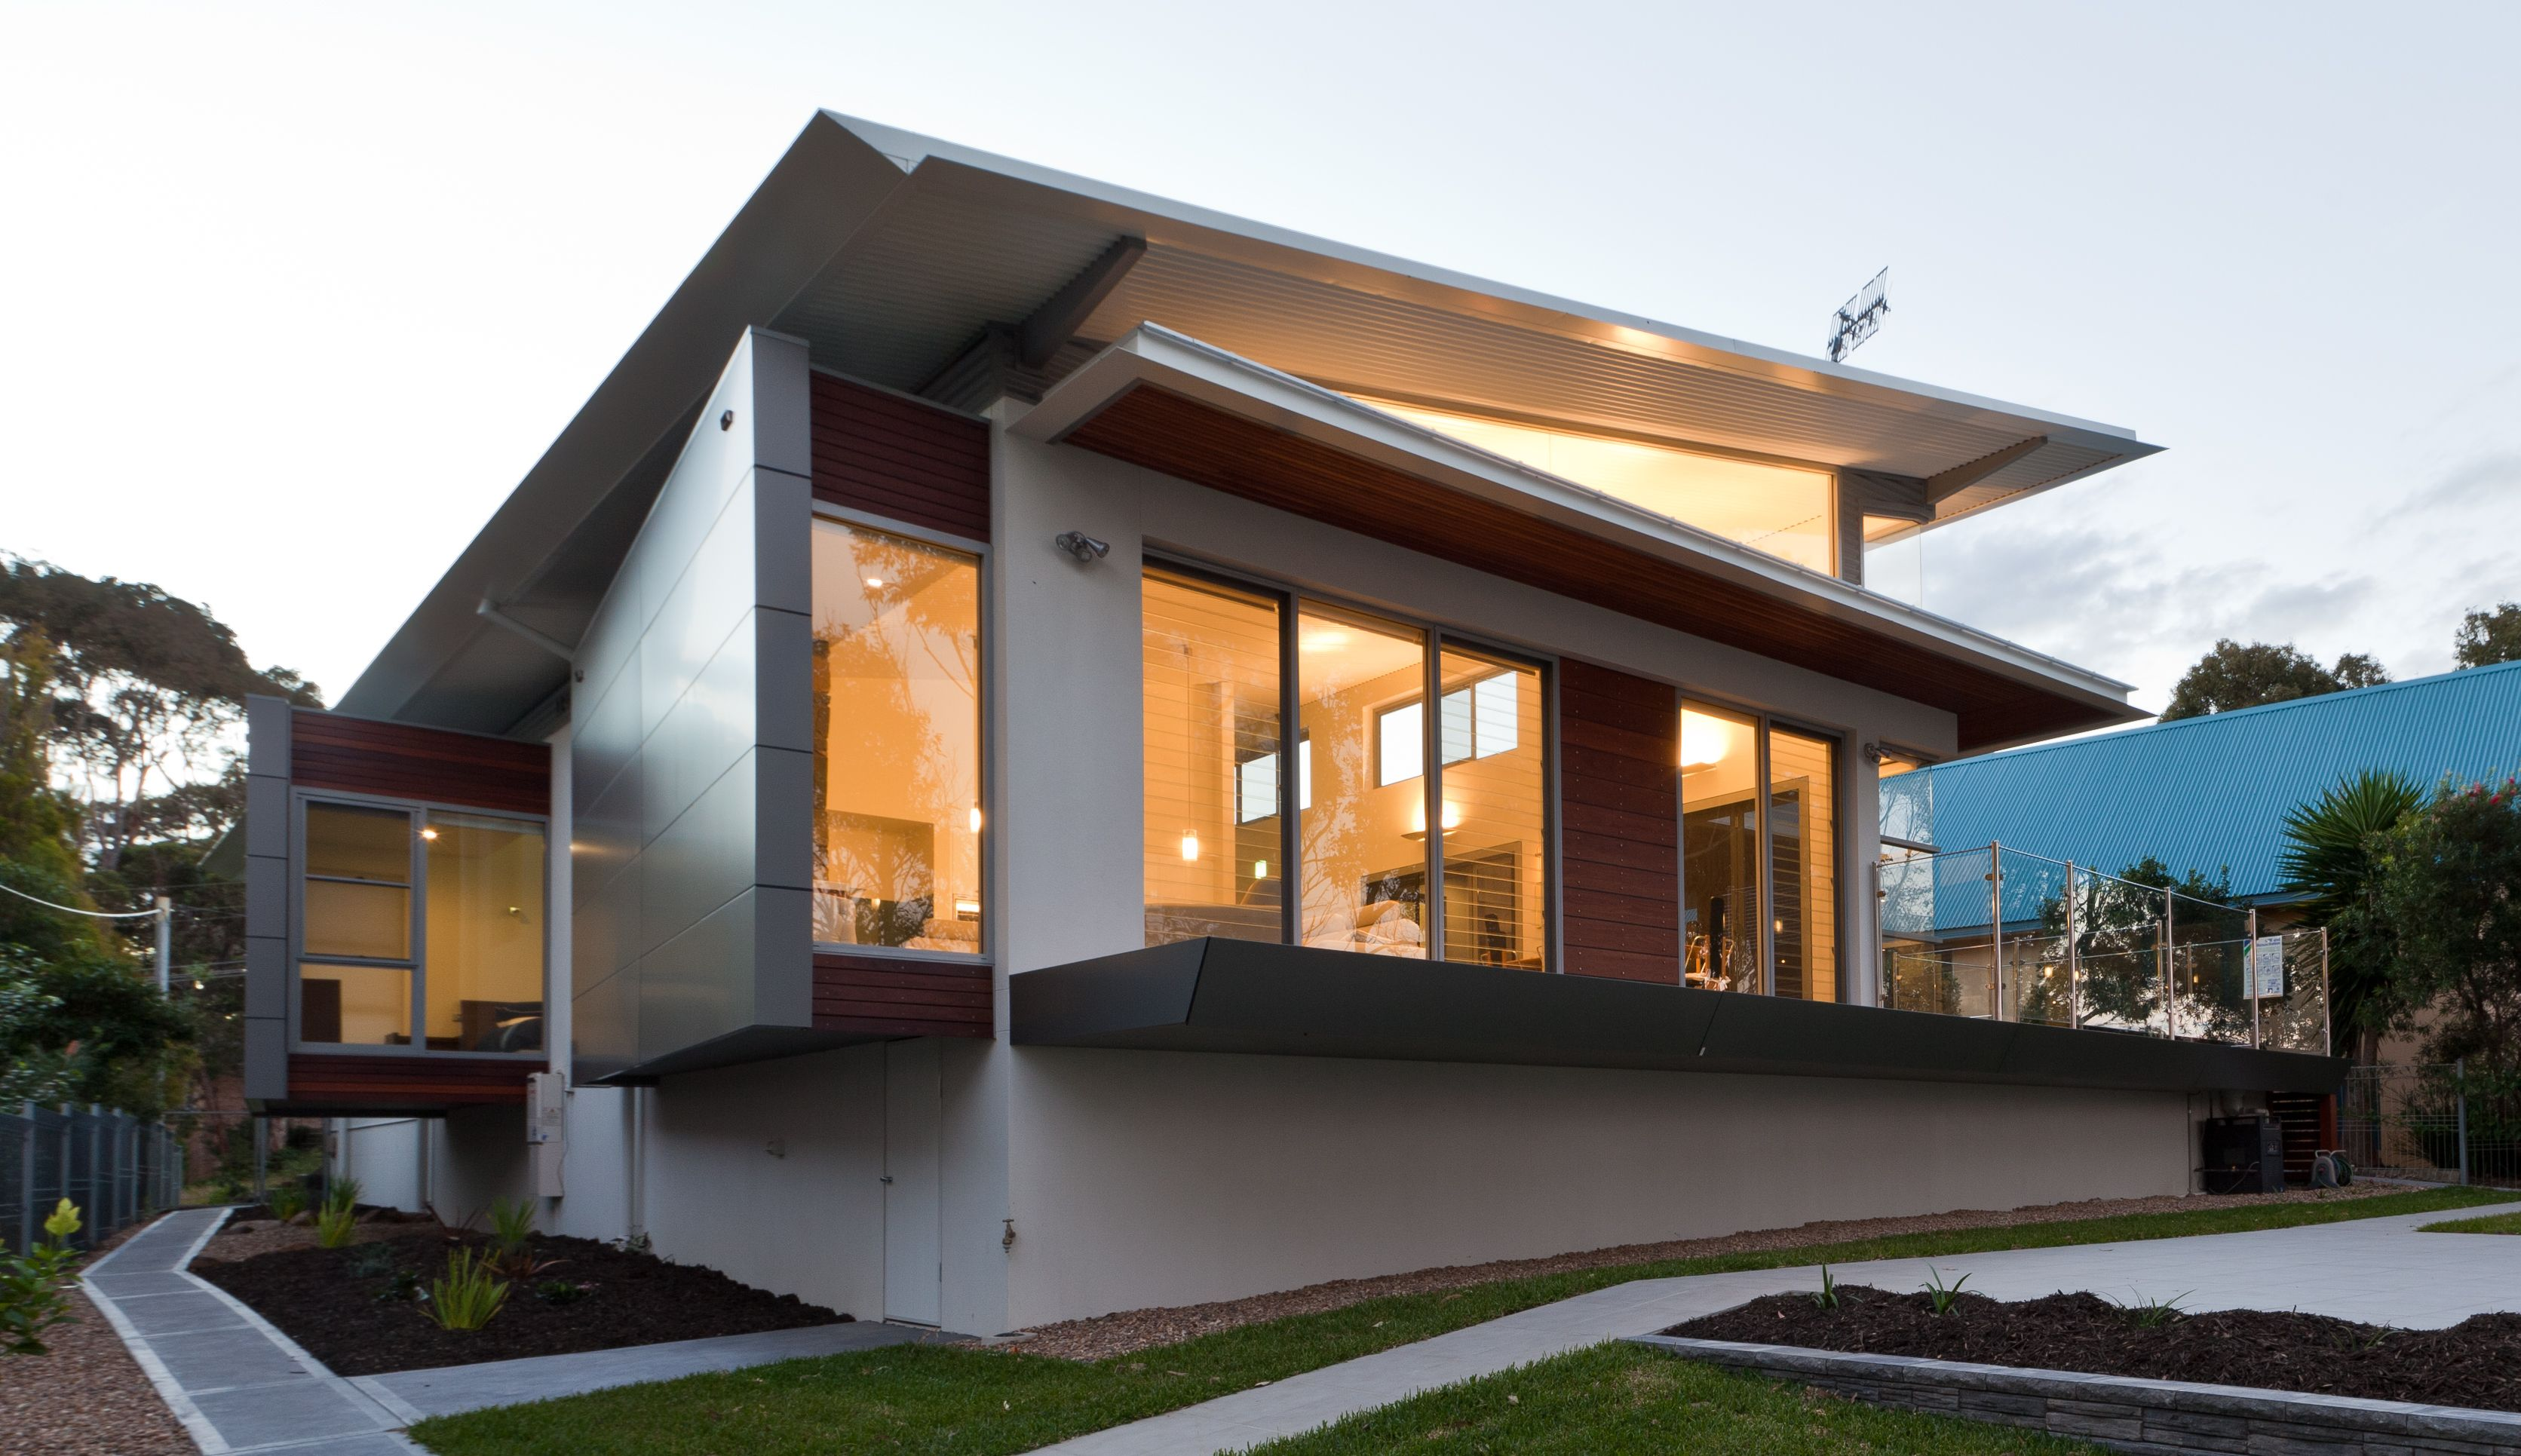 Contemporary Roof Lines Can Be Achieved With Ritek Roof